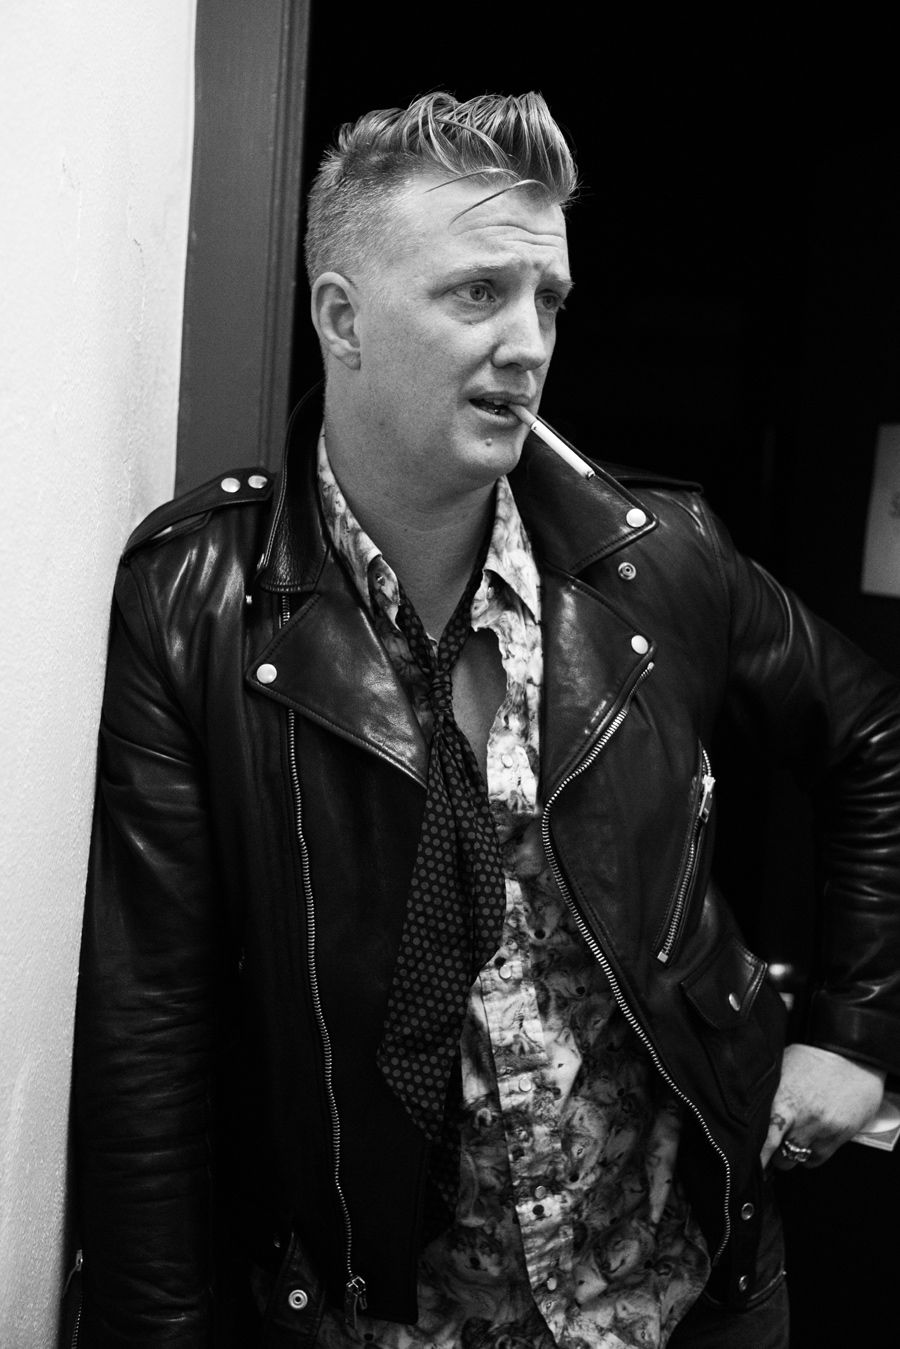 Josh Homme. HEDI SLIMANE DIARY | Queens Of The Stone Age | Pinterest | Josh homme and Live rock